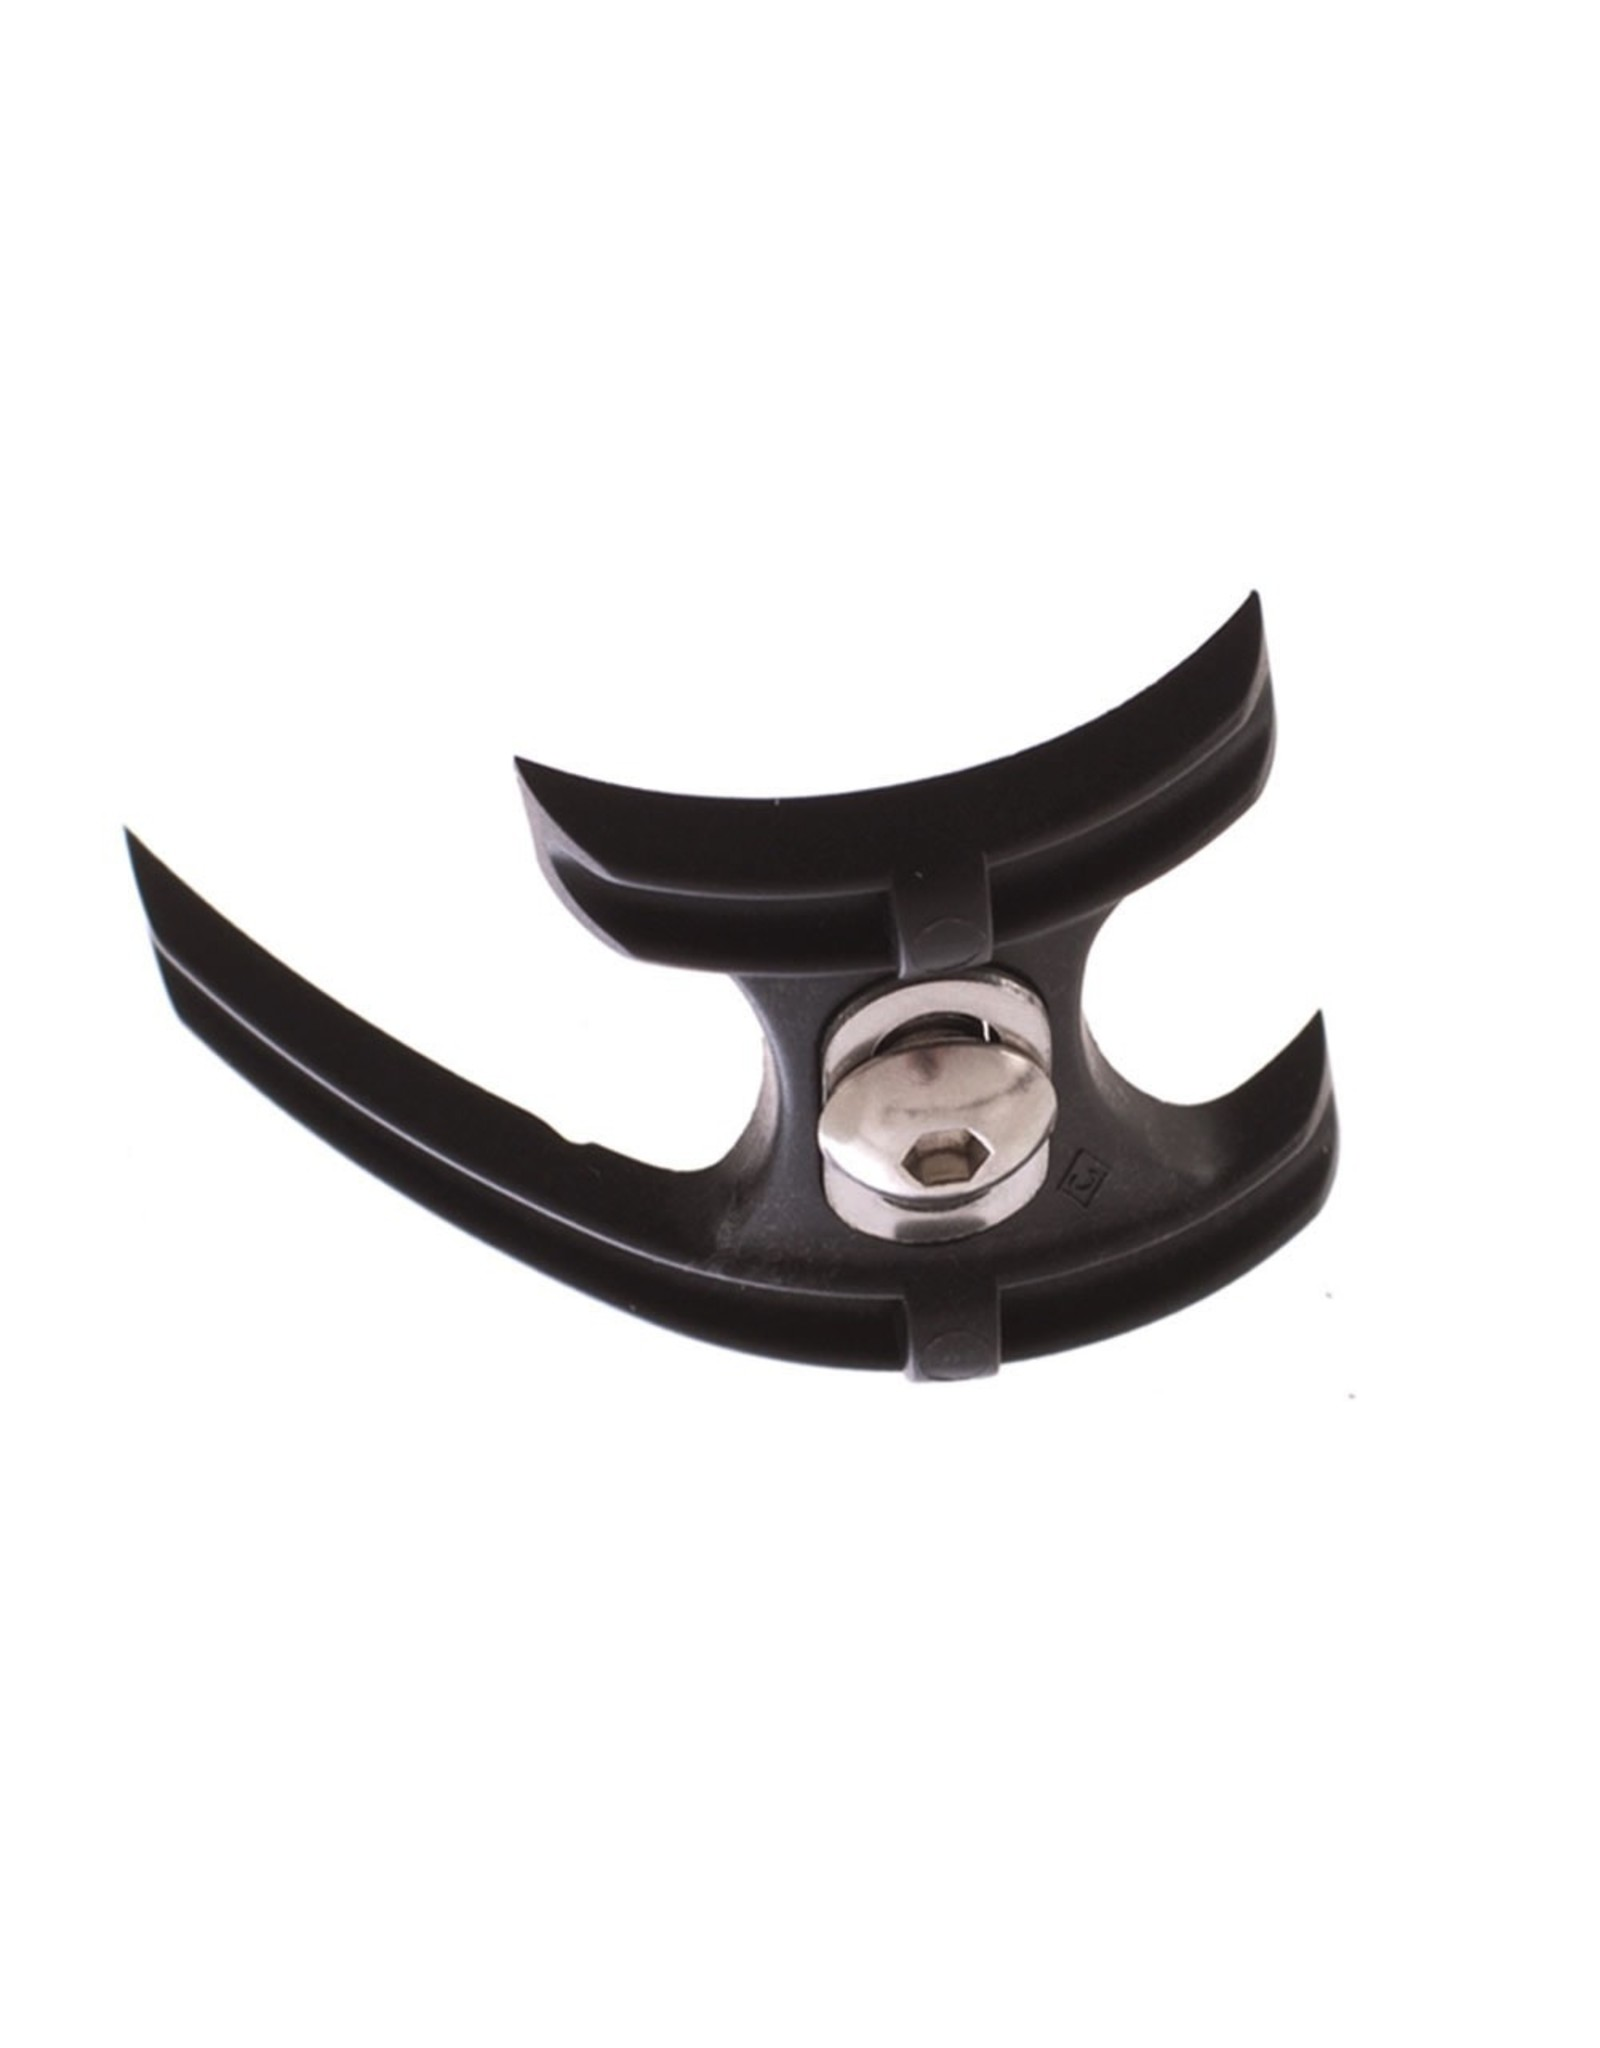 Campagnolo Bottom Bracket Cable Guide